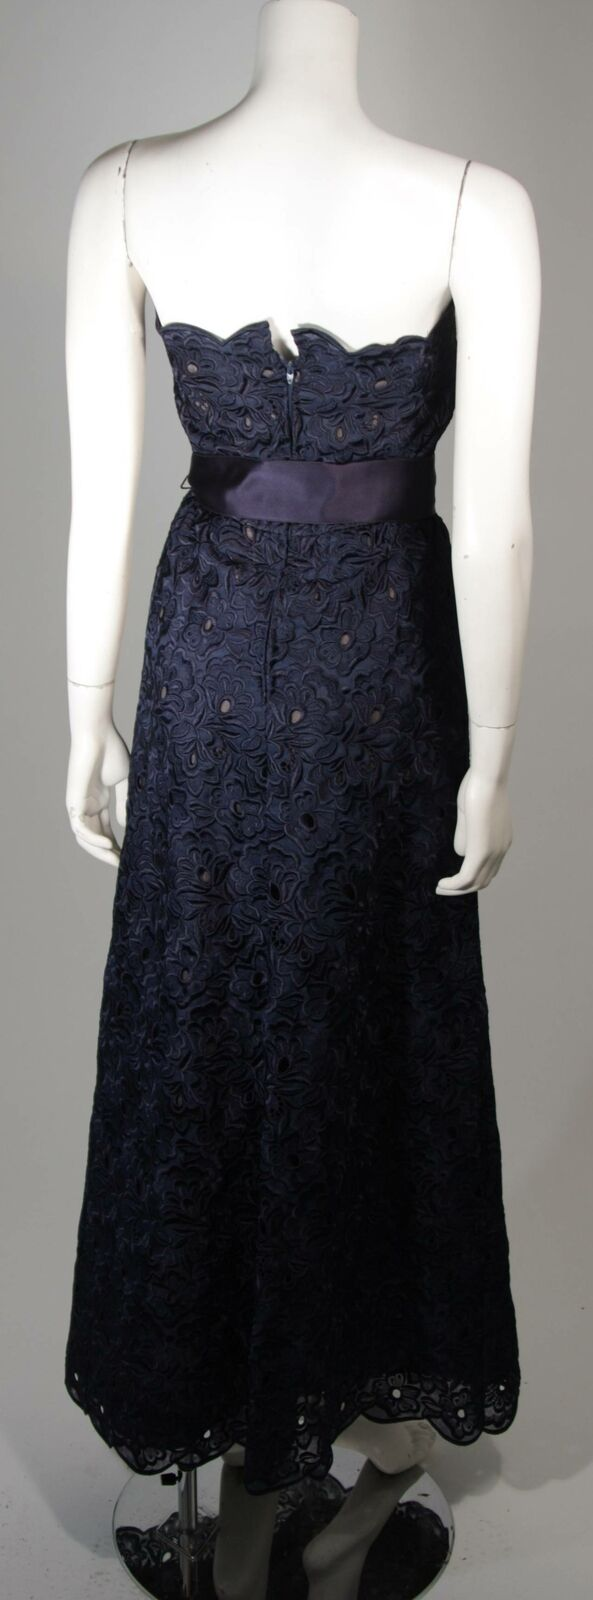 ARNOLD SCAASI Navy Floral Lace Gown Satin Belt Si… - image 3